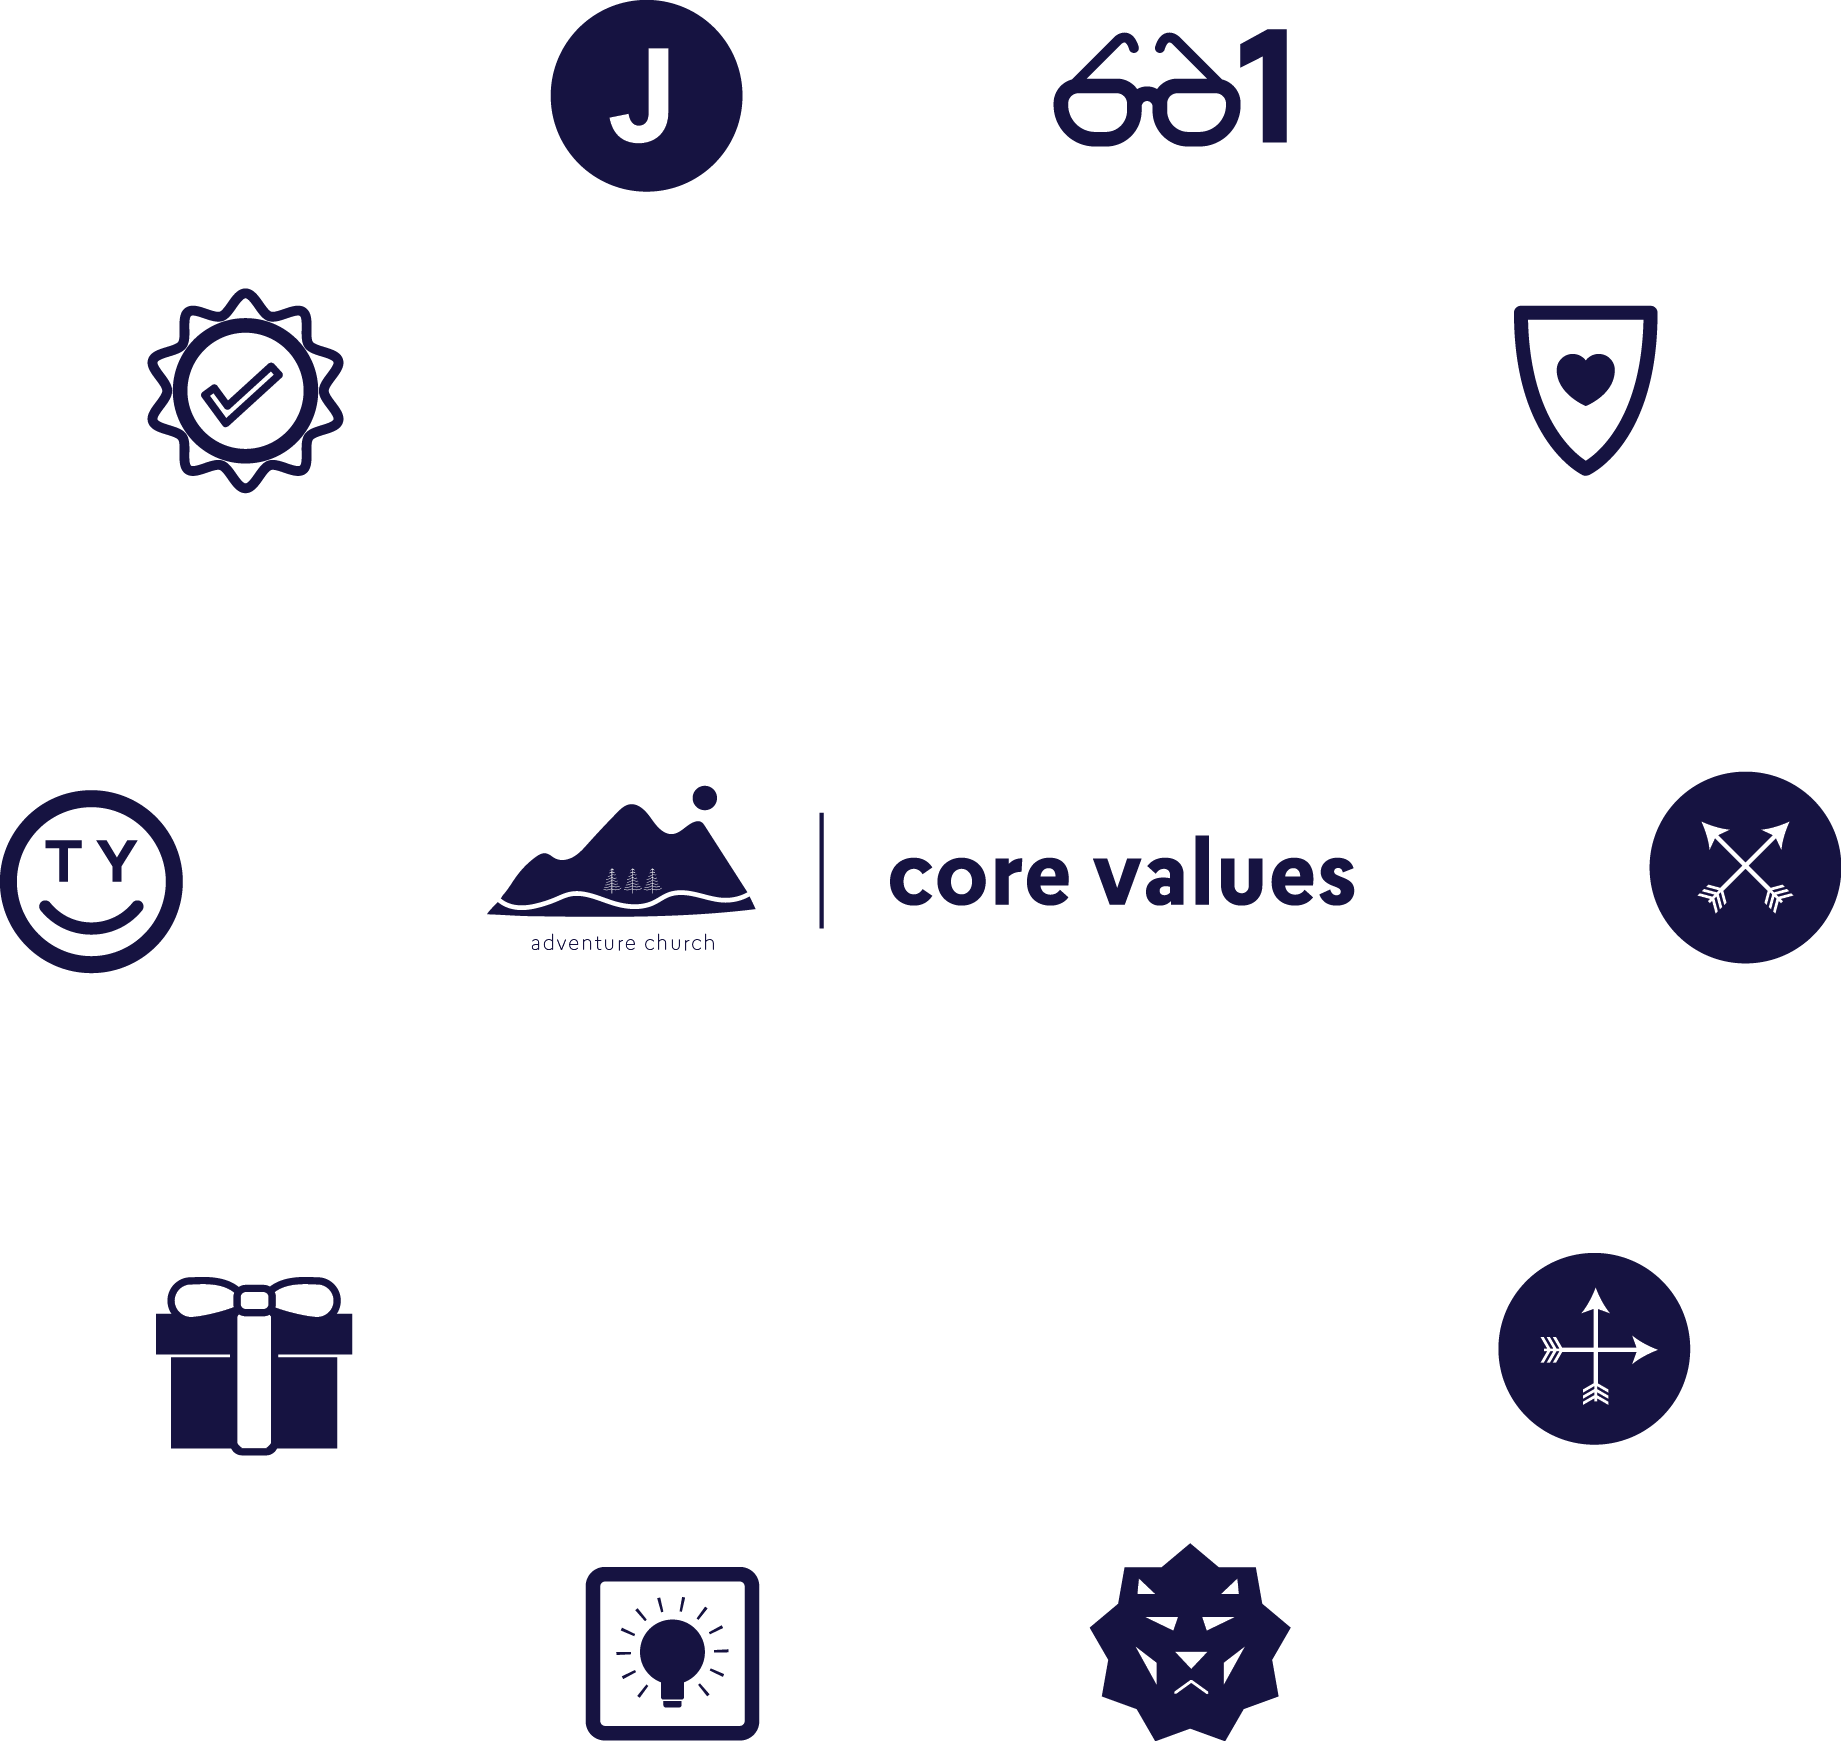 Core Values - Adventure Church-icon-circle.PNG